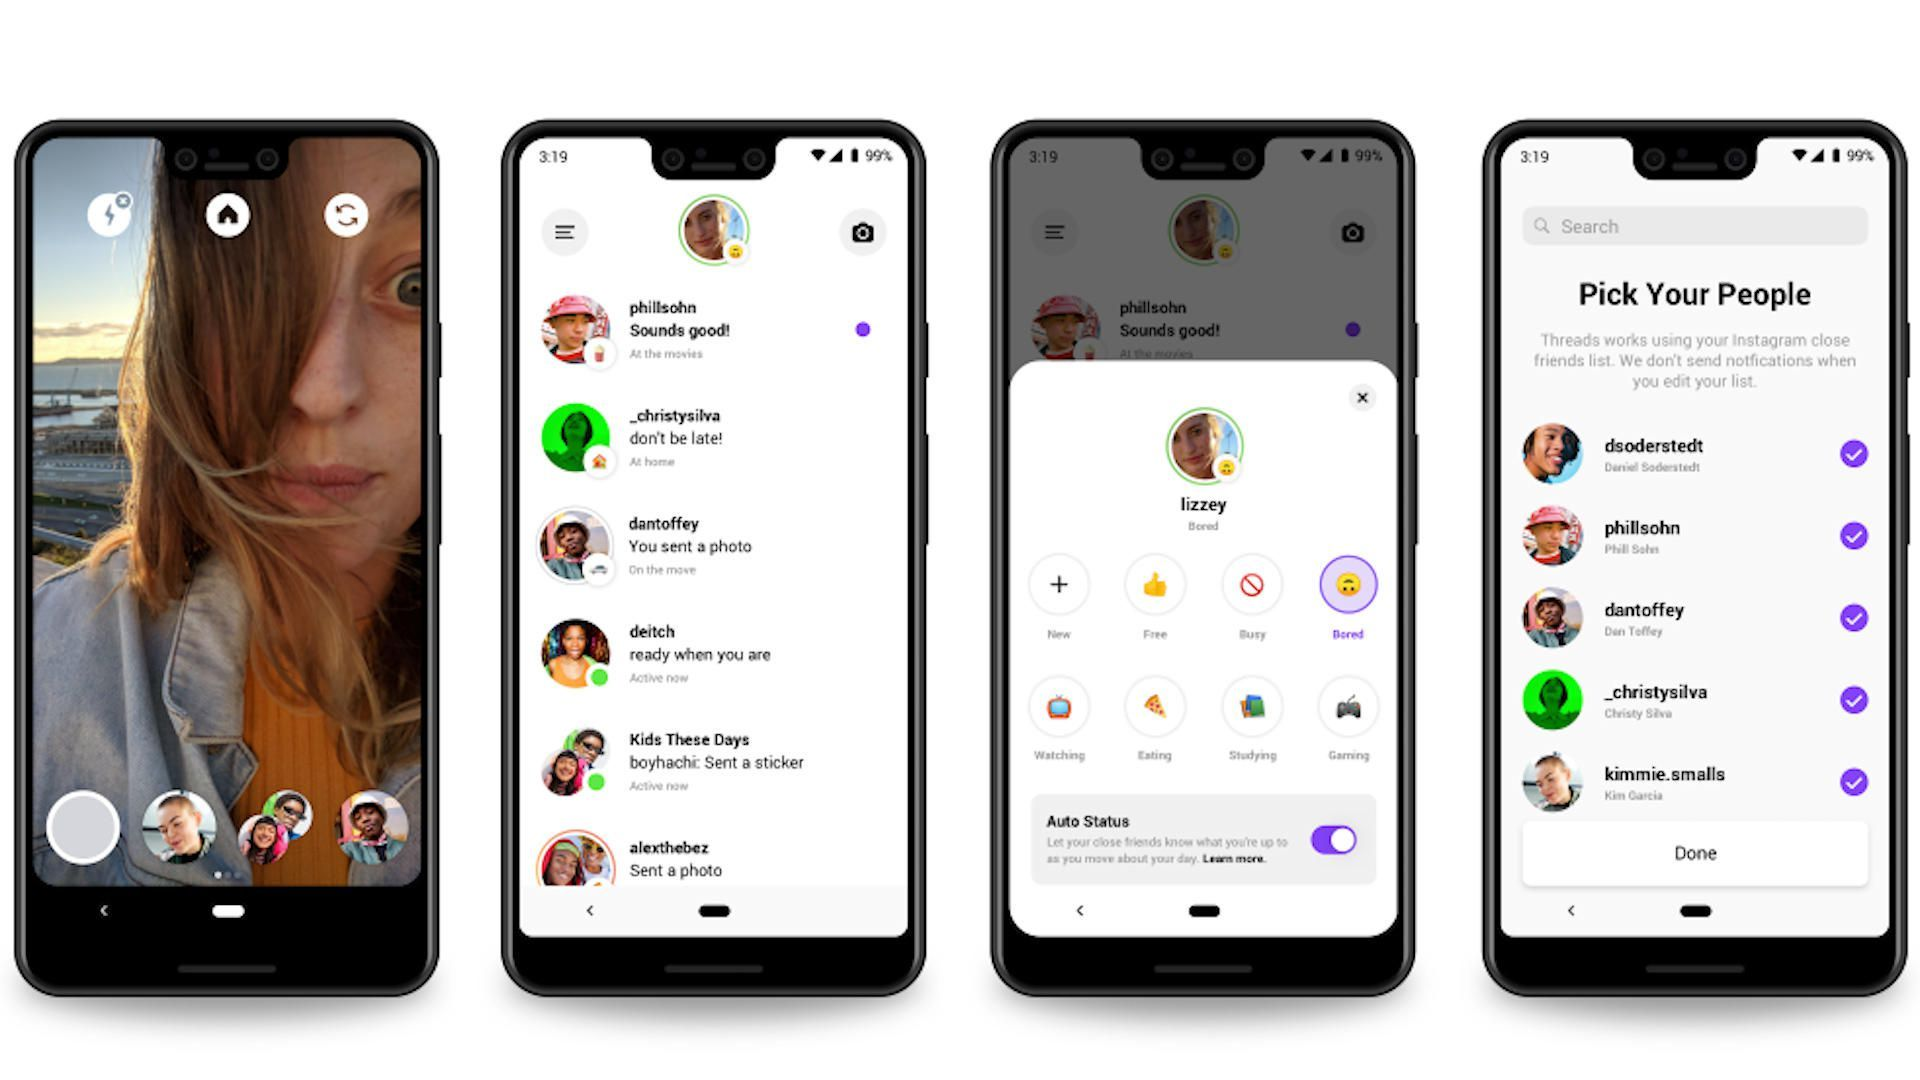 In Today S Top Stories Talking With Your Close Friends On Instagram Should Get Easier With The New Threads App Messaging App App Instagram Editing